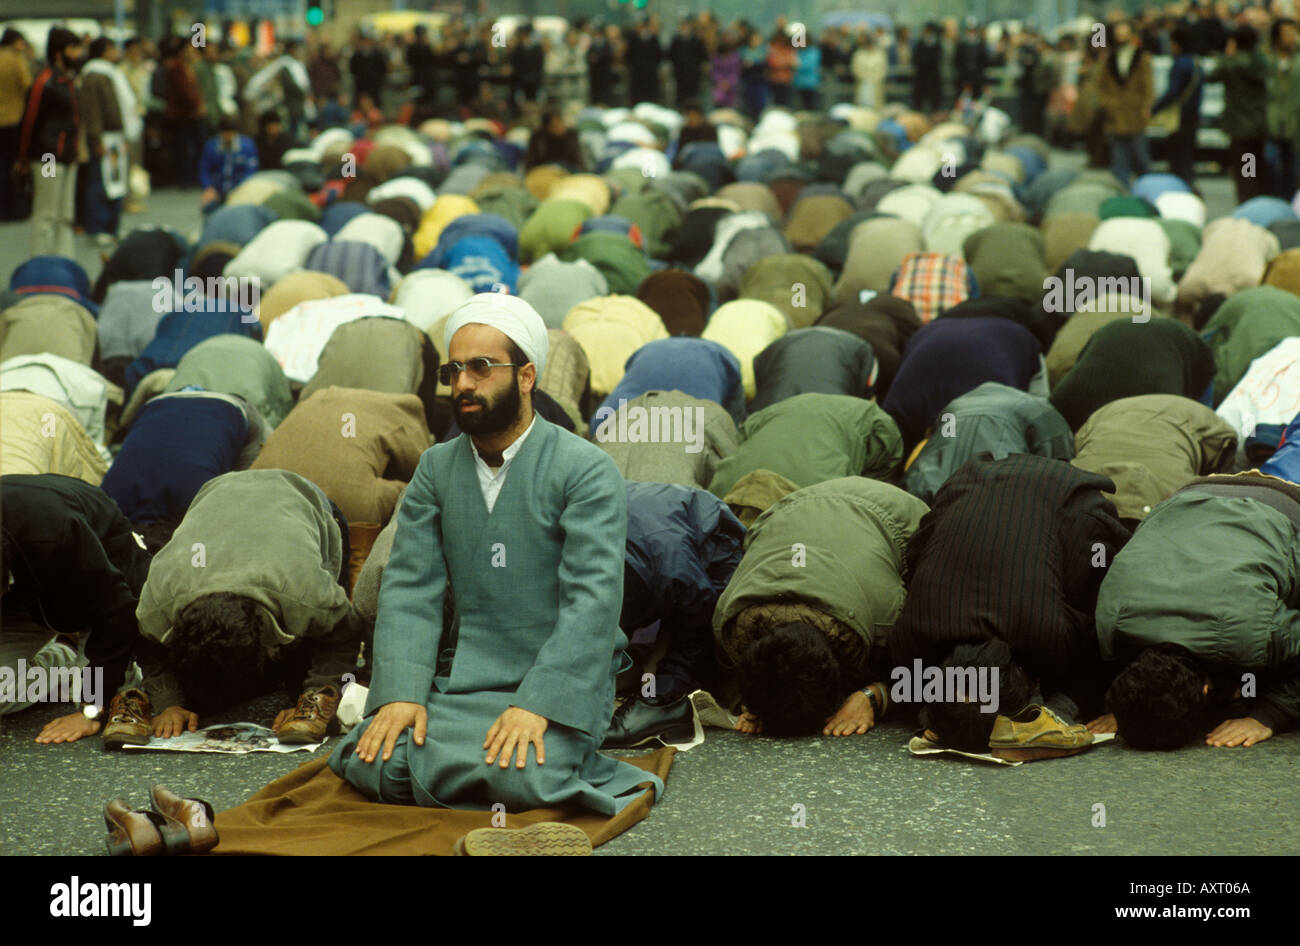 Iranian Embassy siege Muslims praying in the streets for peace  London England May 1980 1980S HOMER SYKES - Stock Image